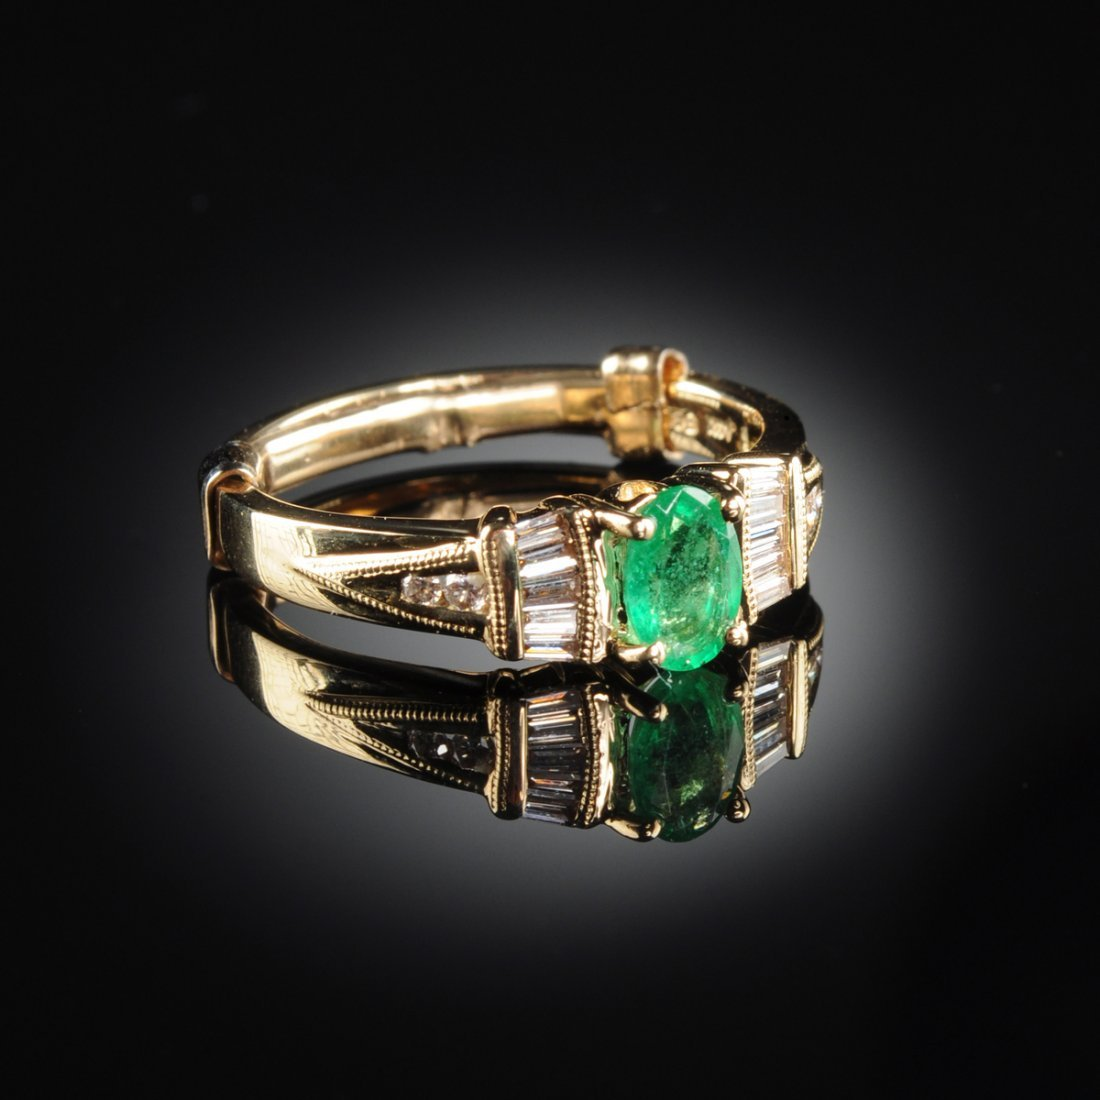 A 14K YELLOW GOLD, EMERALD, AND DIAMOND LADY'S RING,